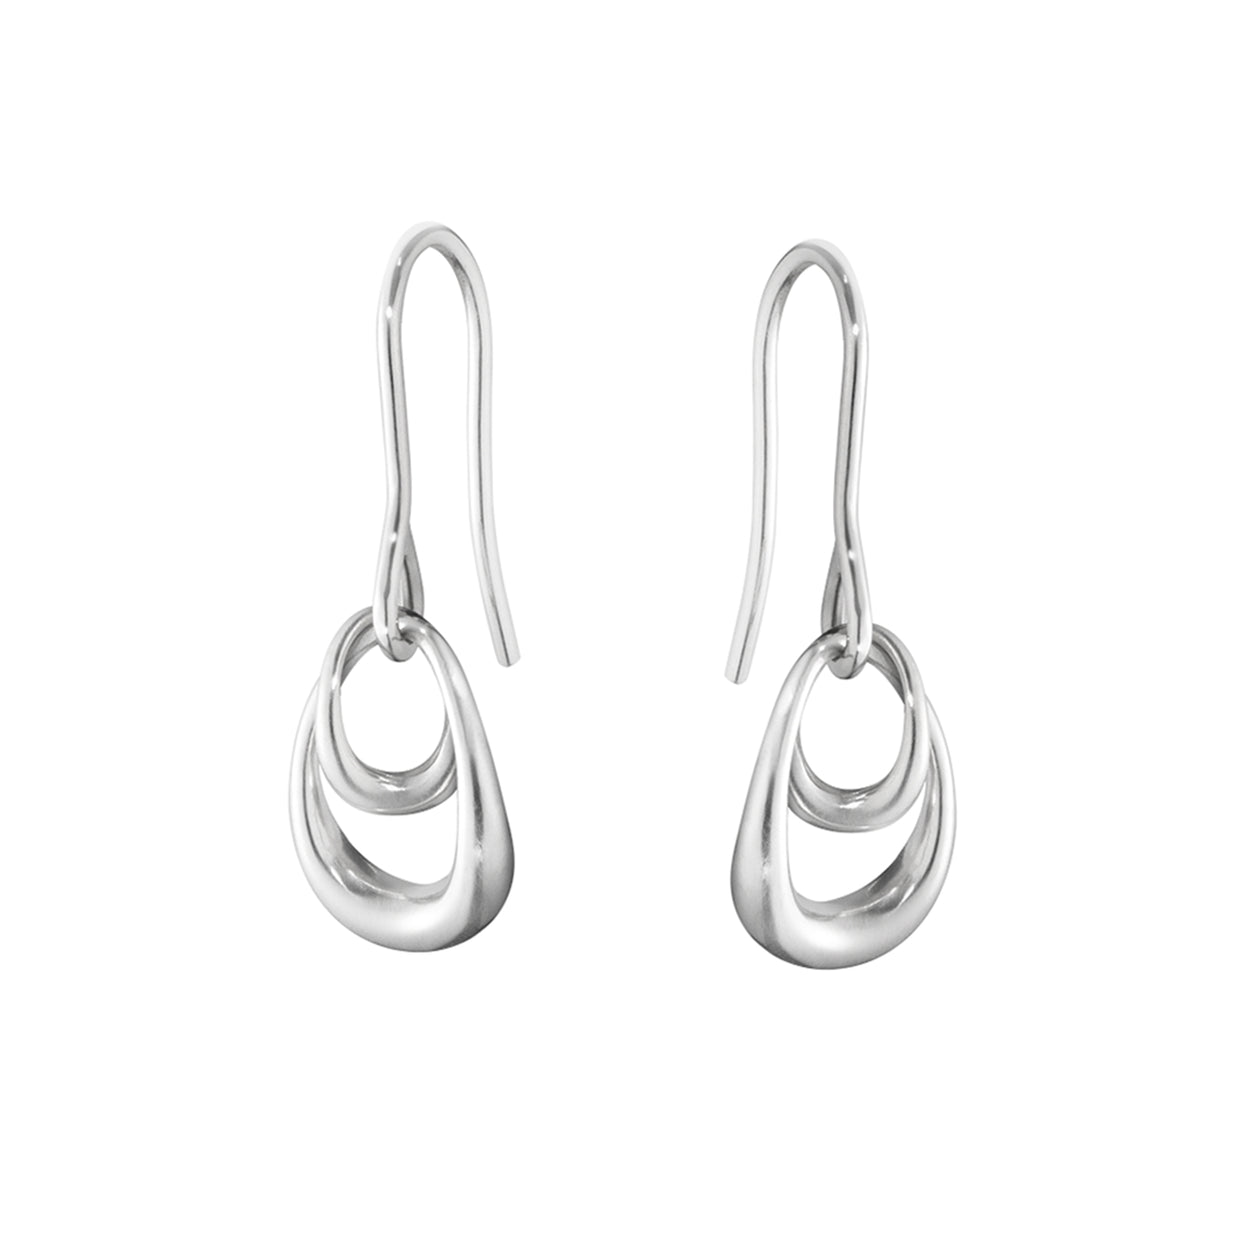 Georg Jensen Offspring Earrings in Sterling Silver - Hamilton & Inches